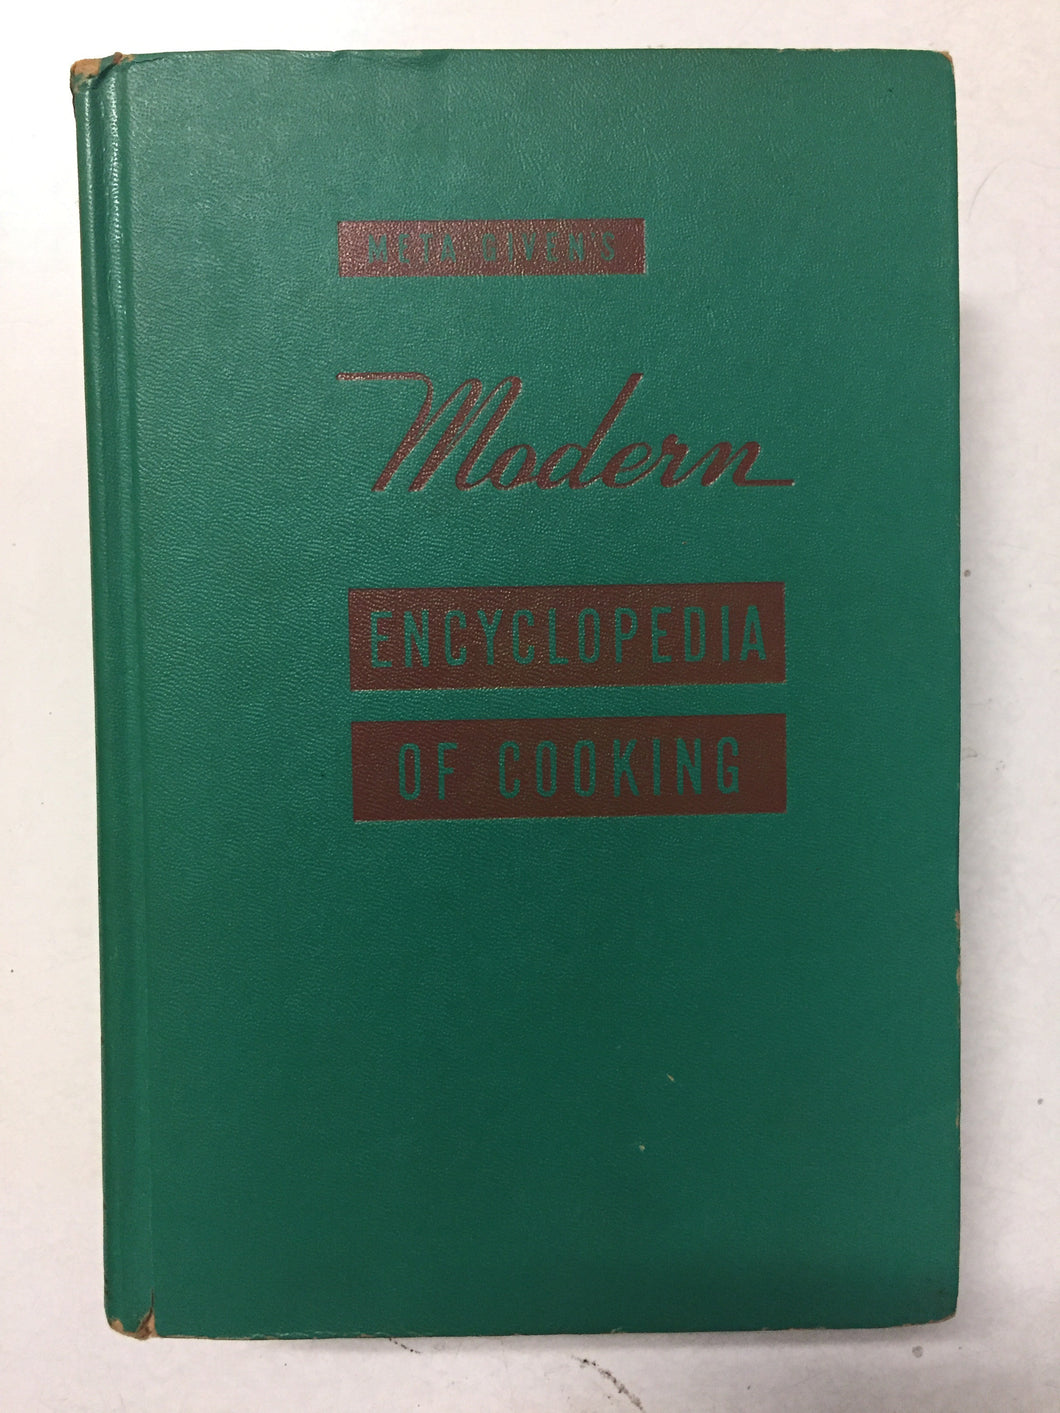 Meta Given's Modern Encyclopedia of Cooking Vol 2 - Slickcatbooks